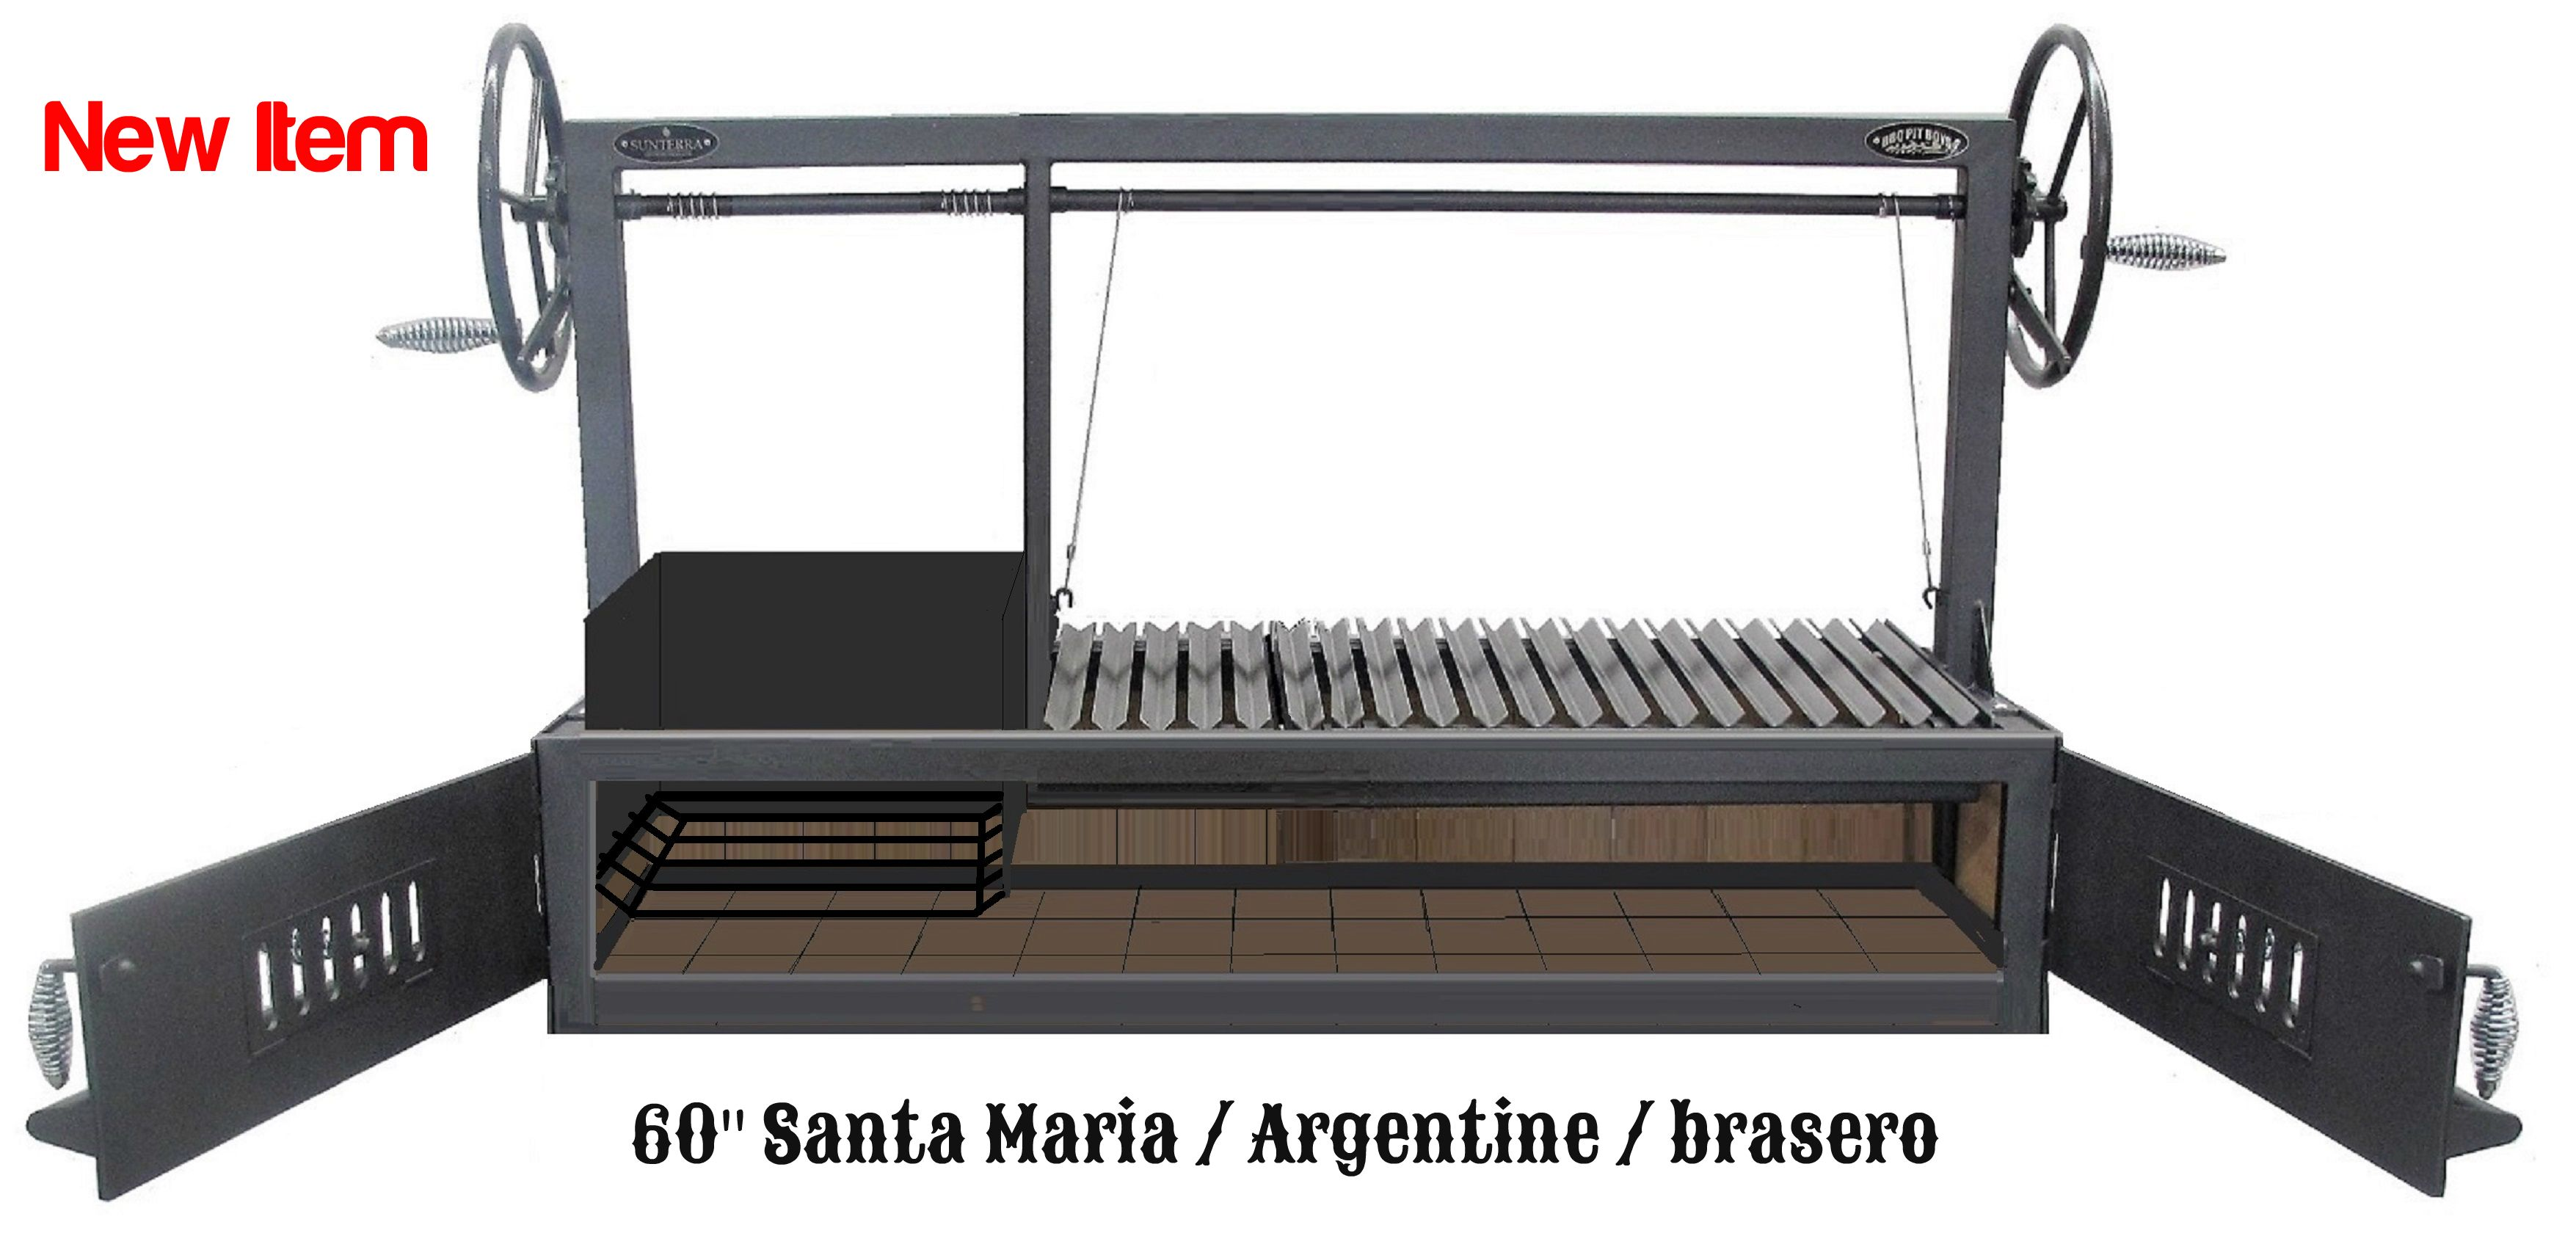 Sunterra Outdoors newest line of BBQ grills, combines our ...